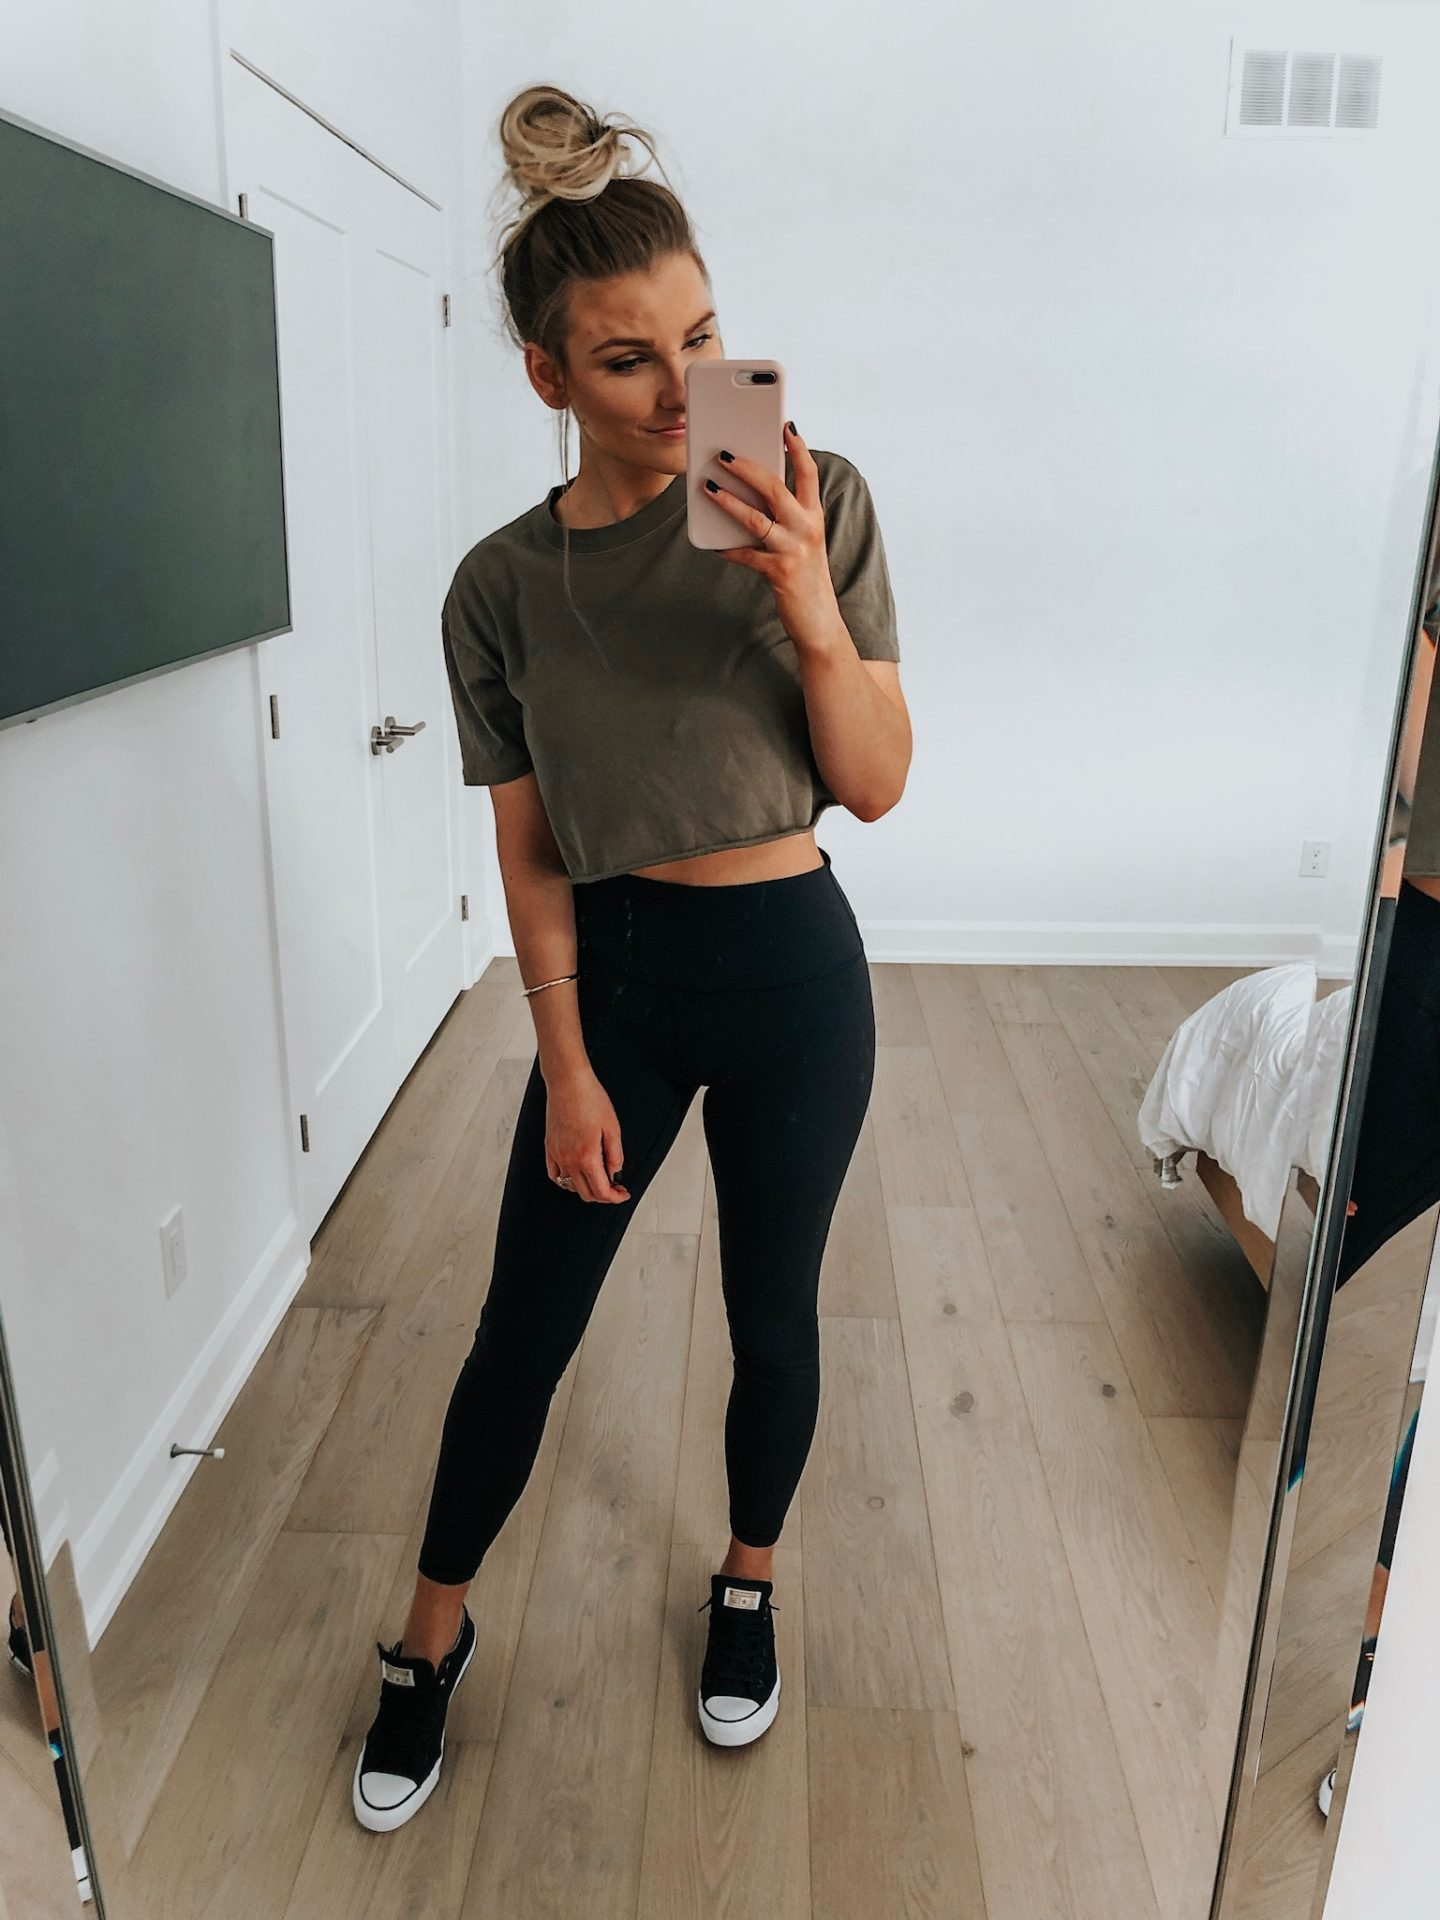 fashion blogger taking selfie wearing green crop top and black leggings with converse